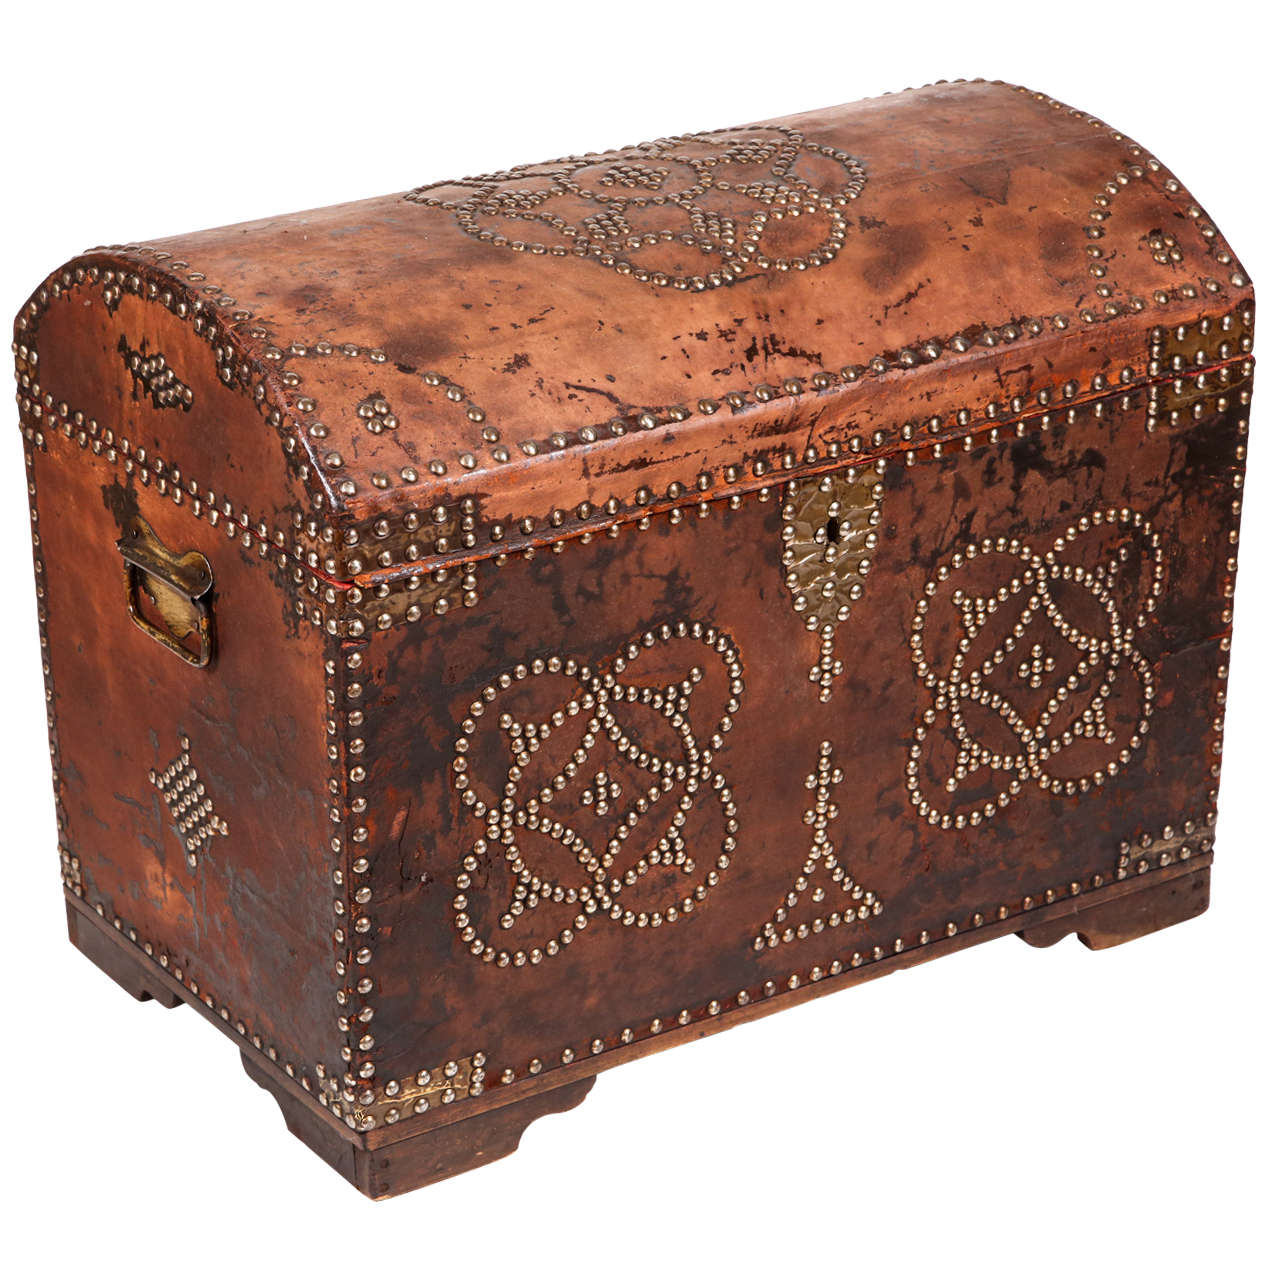 1920s Small Leather Trunk